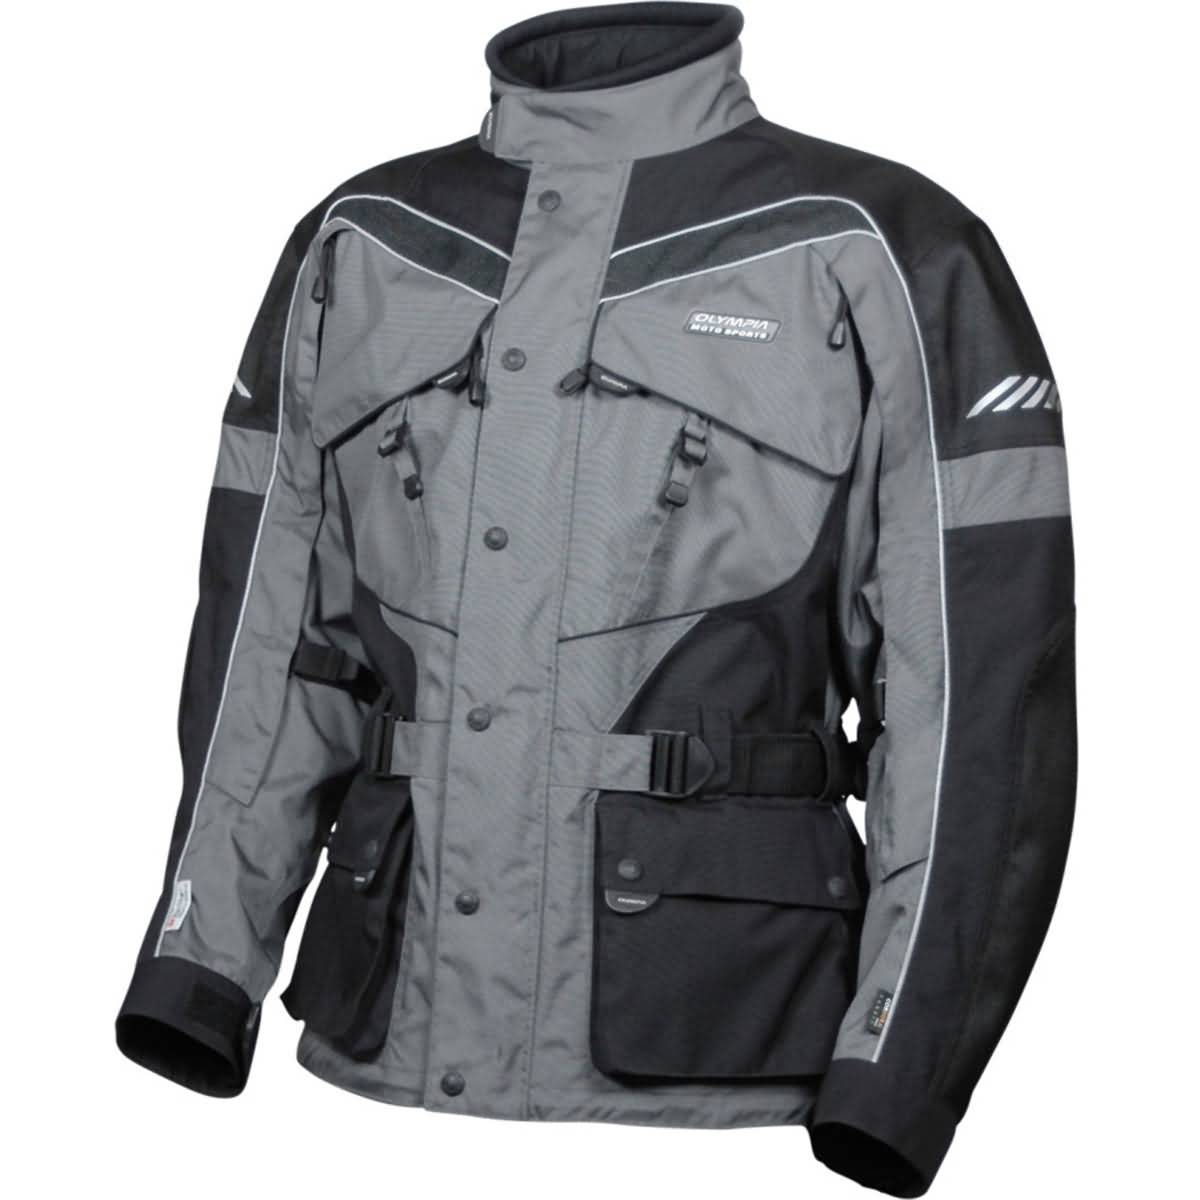 Olympia AST 2 Men's Street Jackets - Pewter / Black